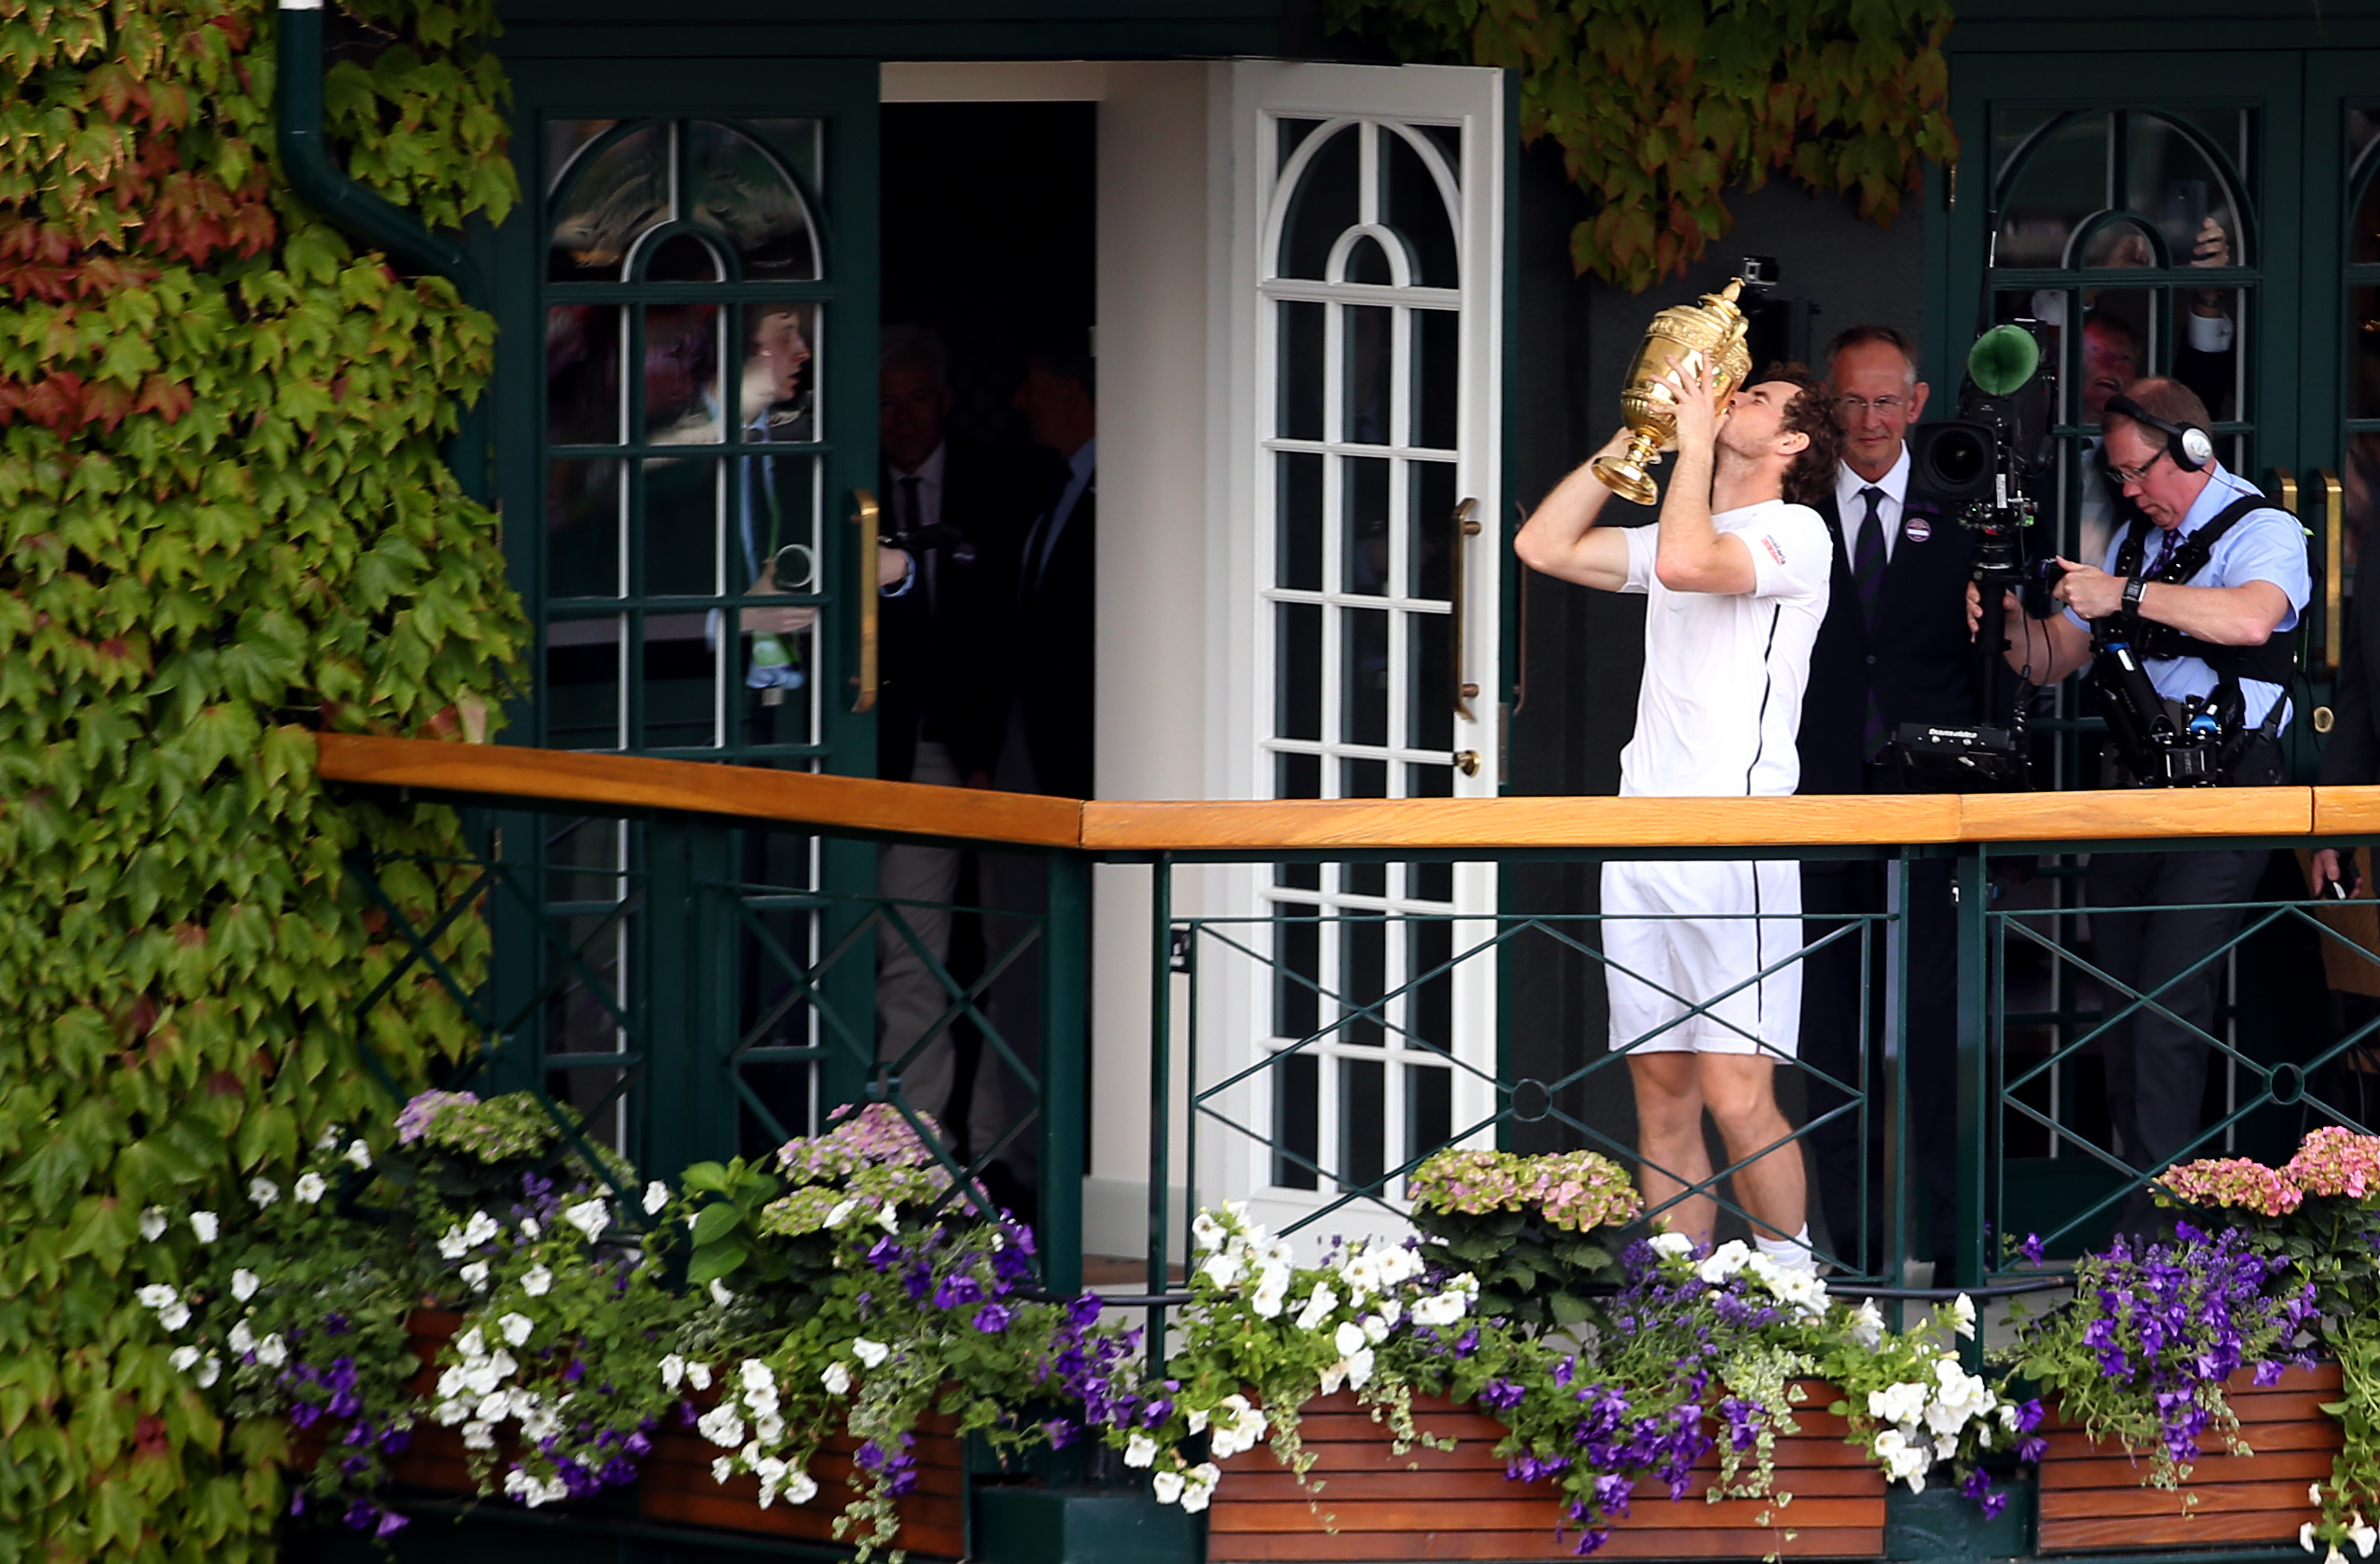 Murray kisses his second Wimbledon trophy. Image: PA Images